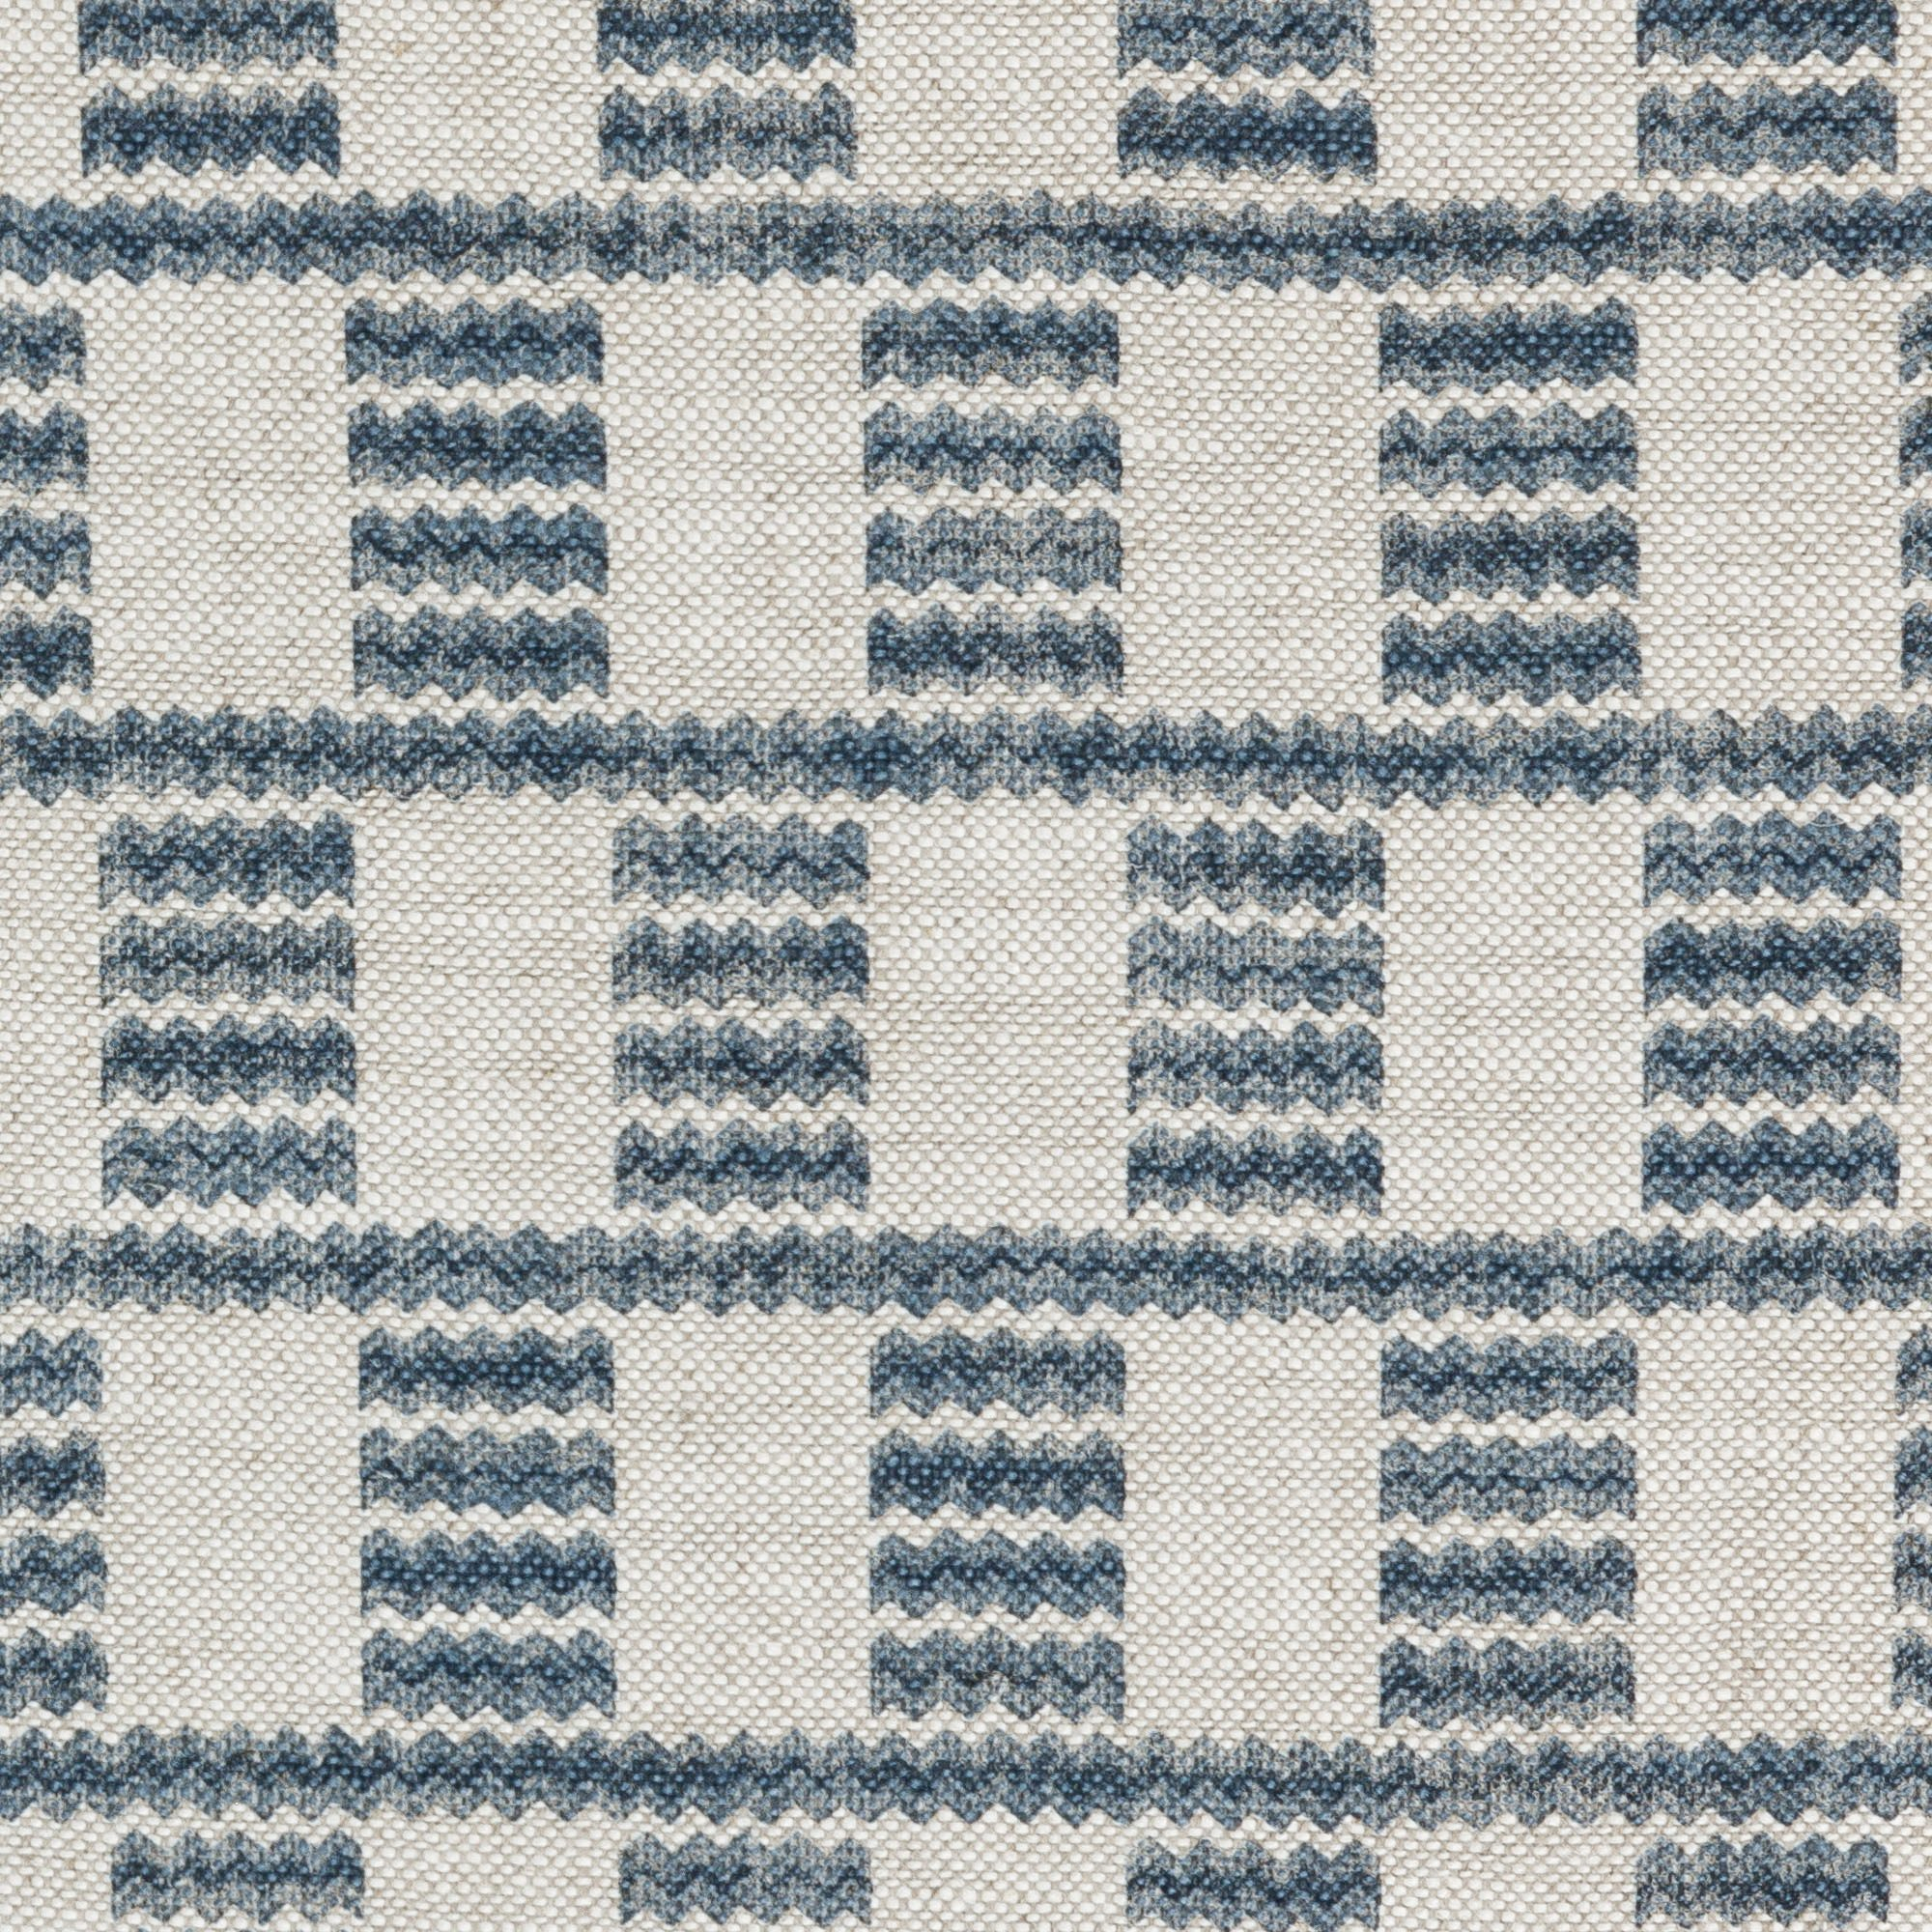 COVE-011-Grey-Blue-Cove-Linen(2)